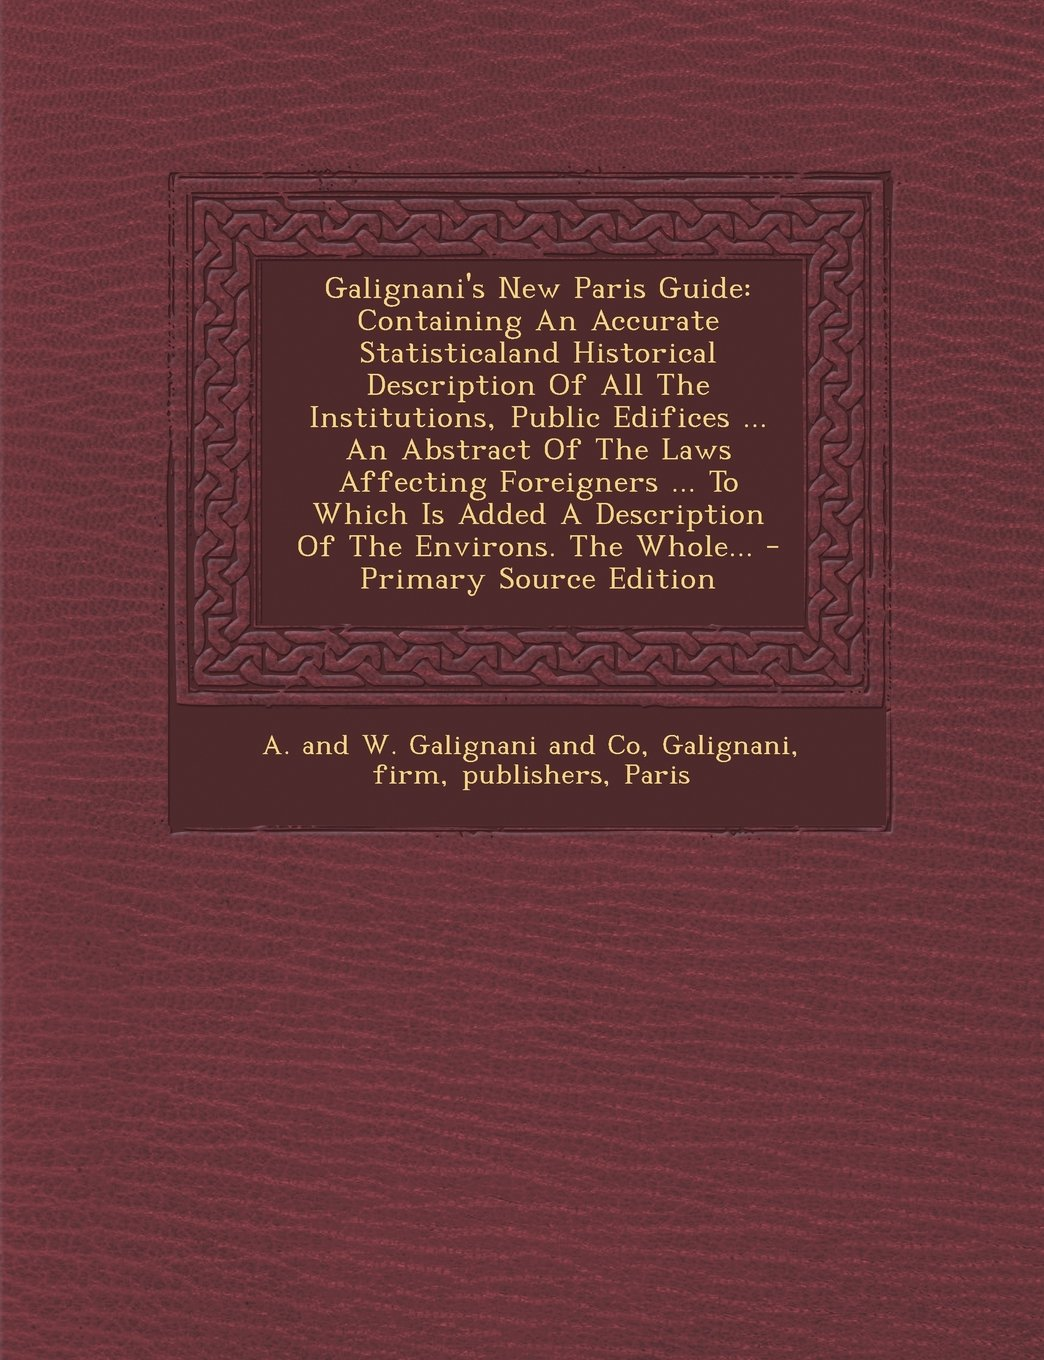 Galignani's New Paris Guide: Containing An Accurate Statisticaland Historical Description Of All The Institutions, Public Edifices ... An Abstract Of ... A Description Of The Environs. The Whole... pdf epub